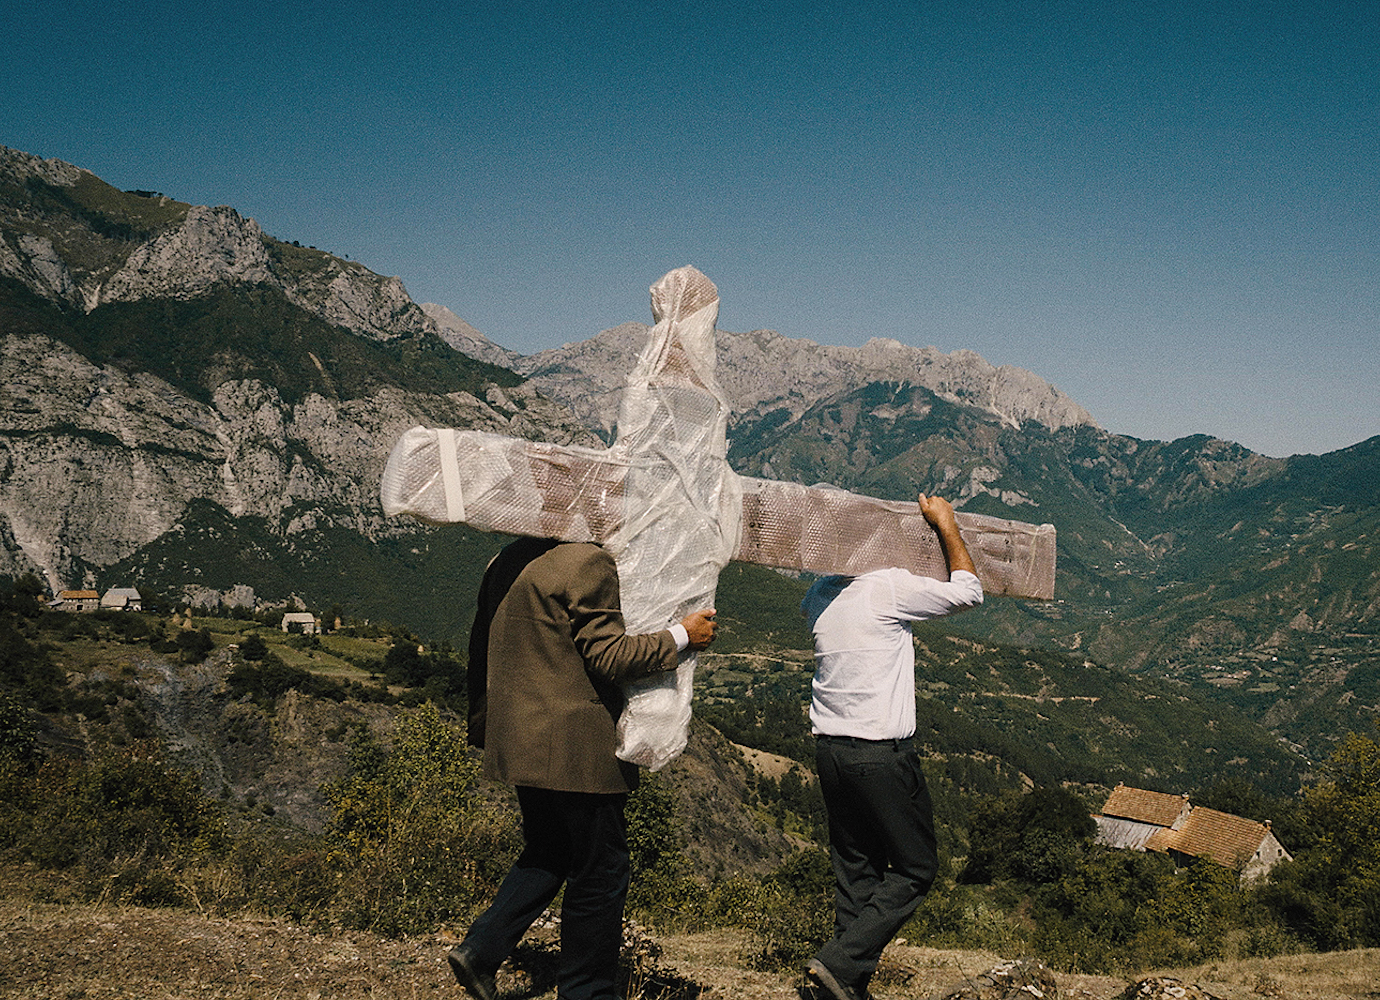 In Reconciliation, a Balkan family is caught between preserving tradition and embracing forgiveness